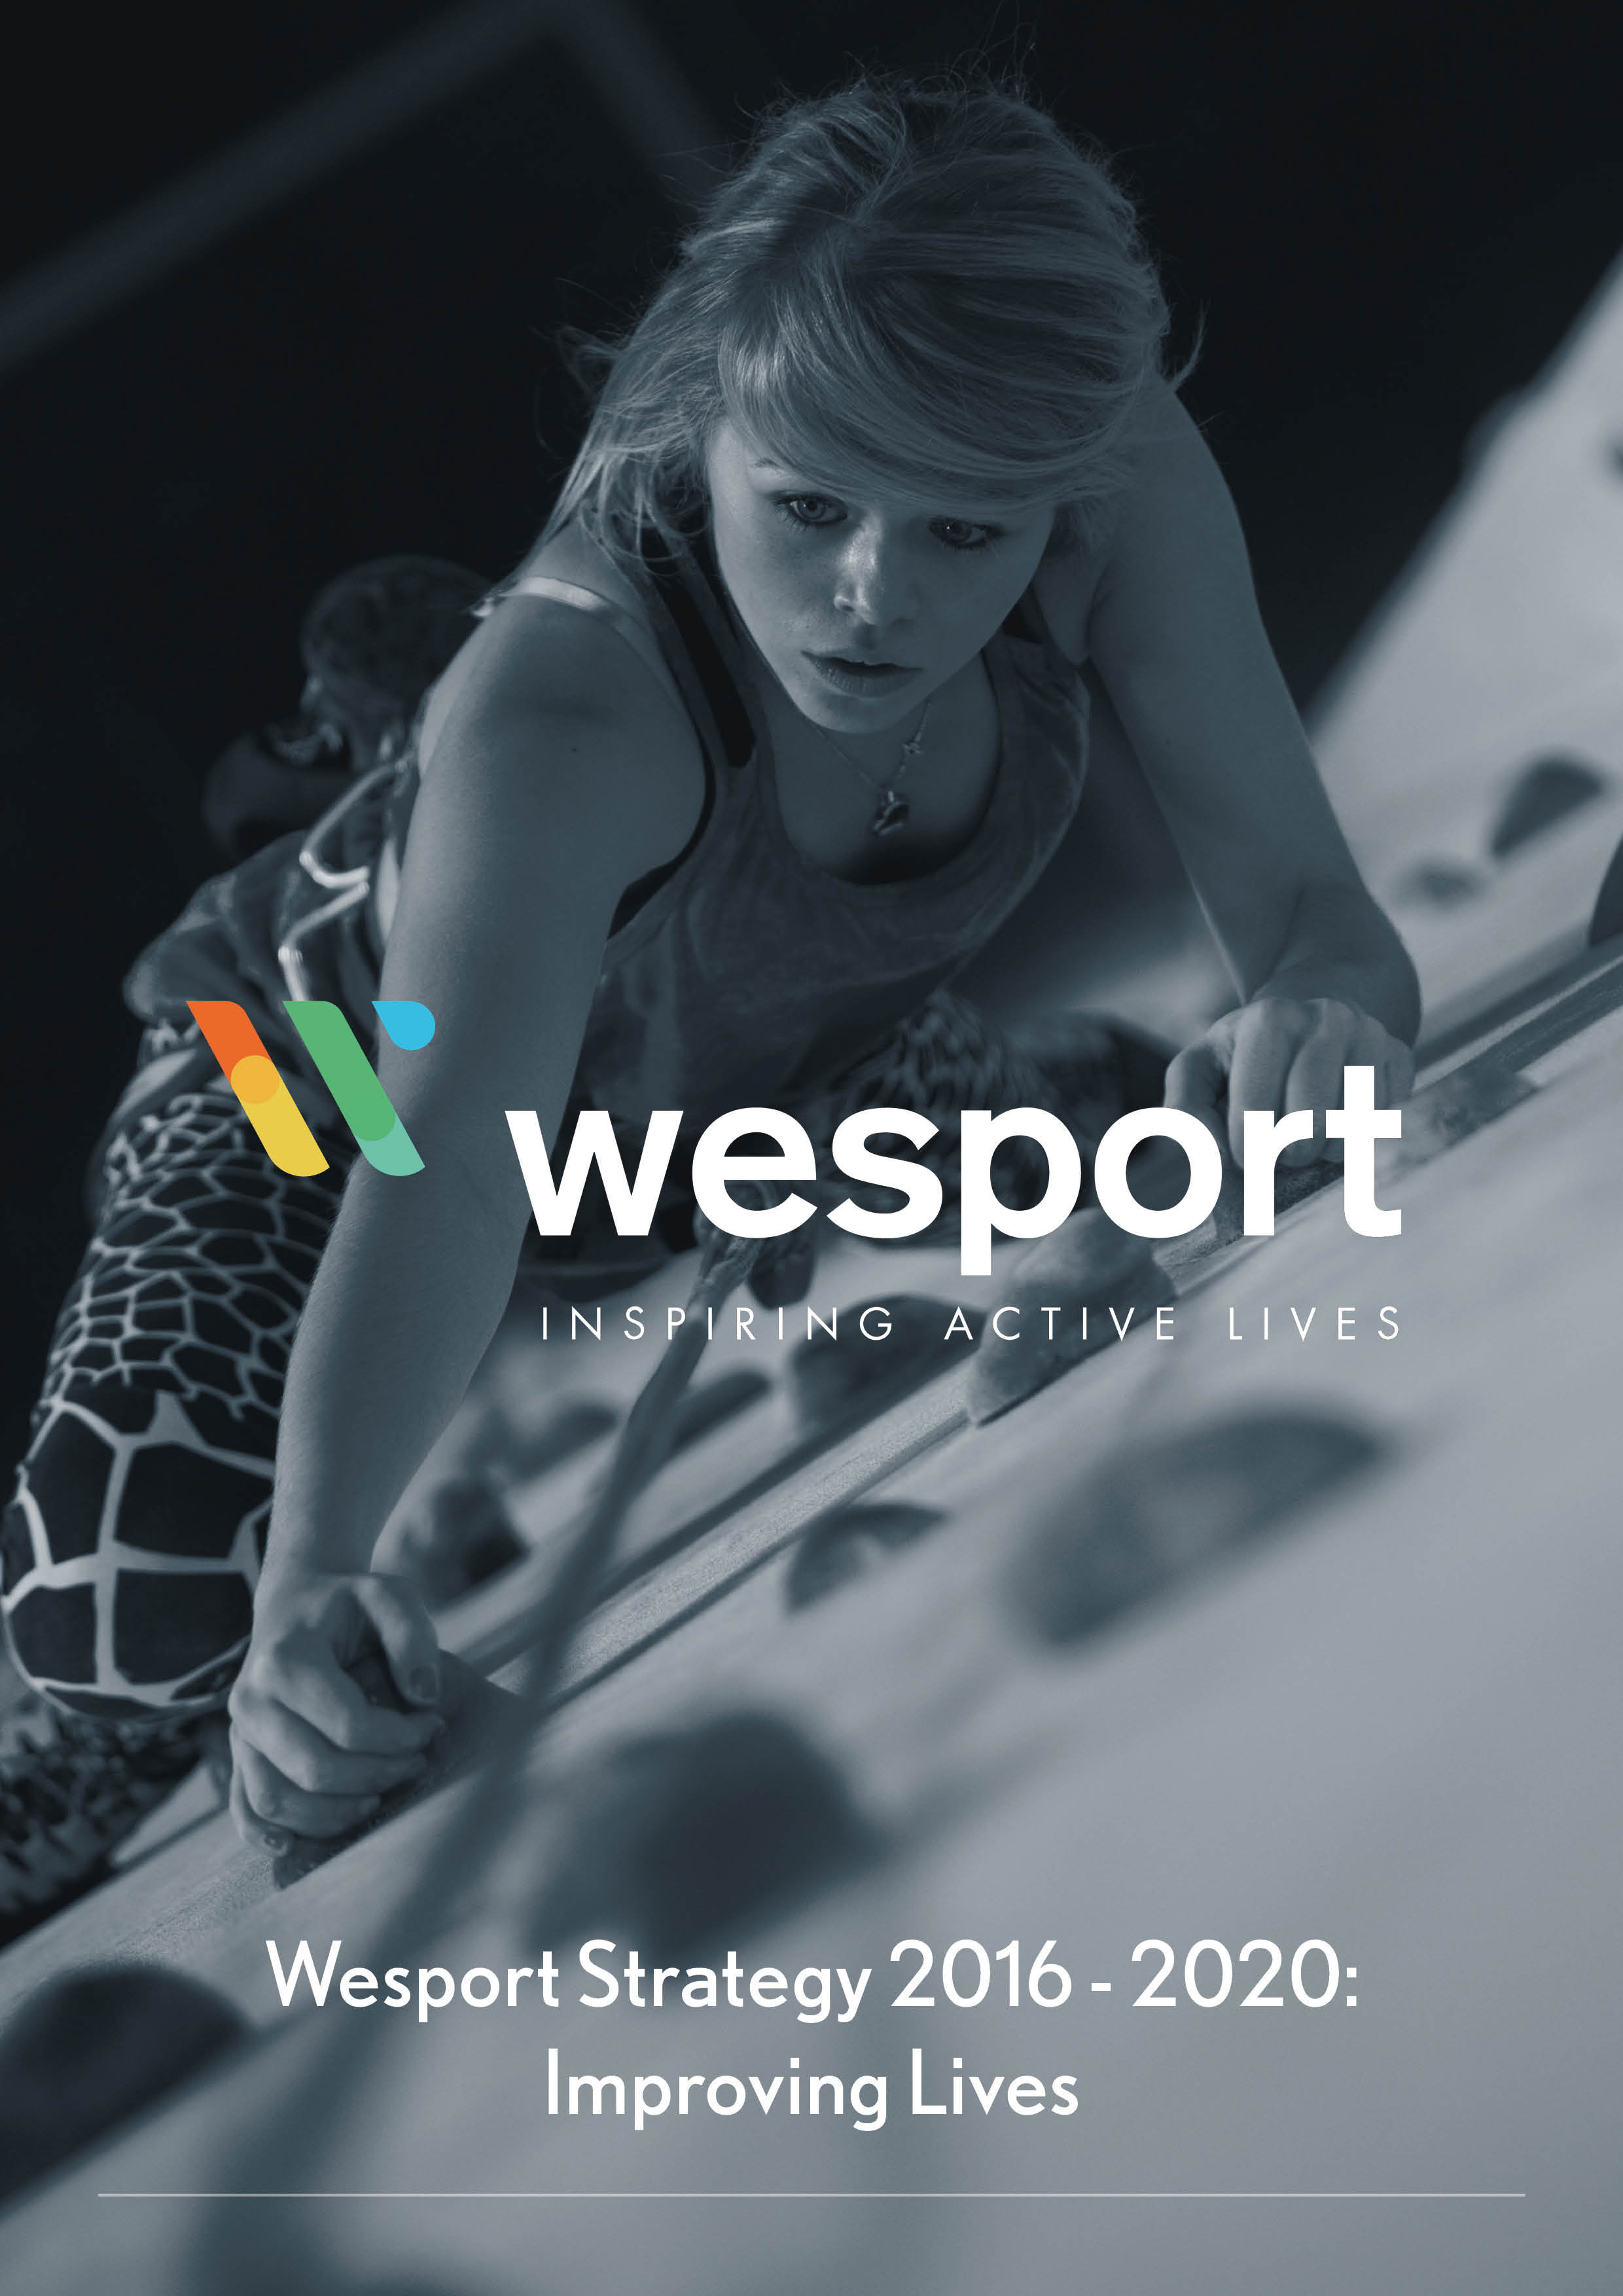 An image of the front cover of Wesports new strategy for 2016-2020 'Improving Lives'